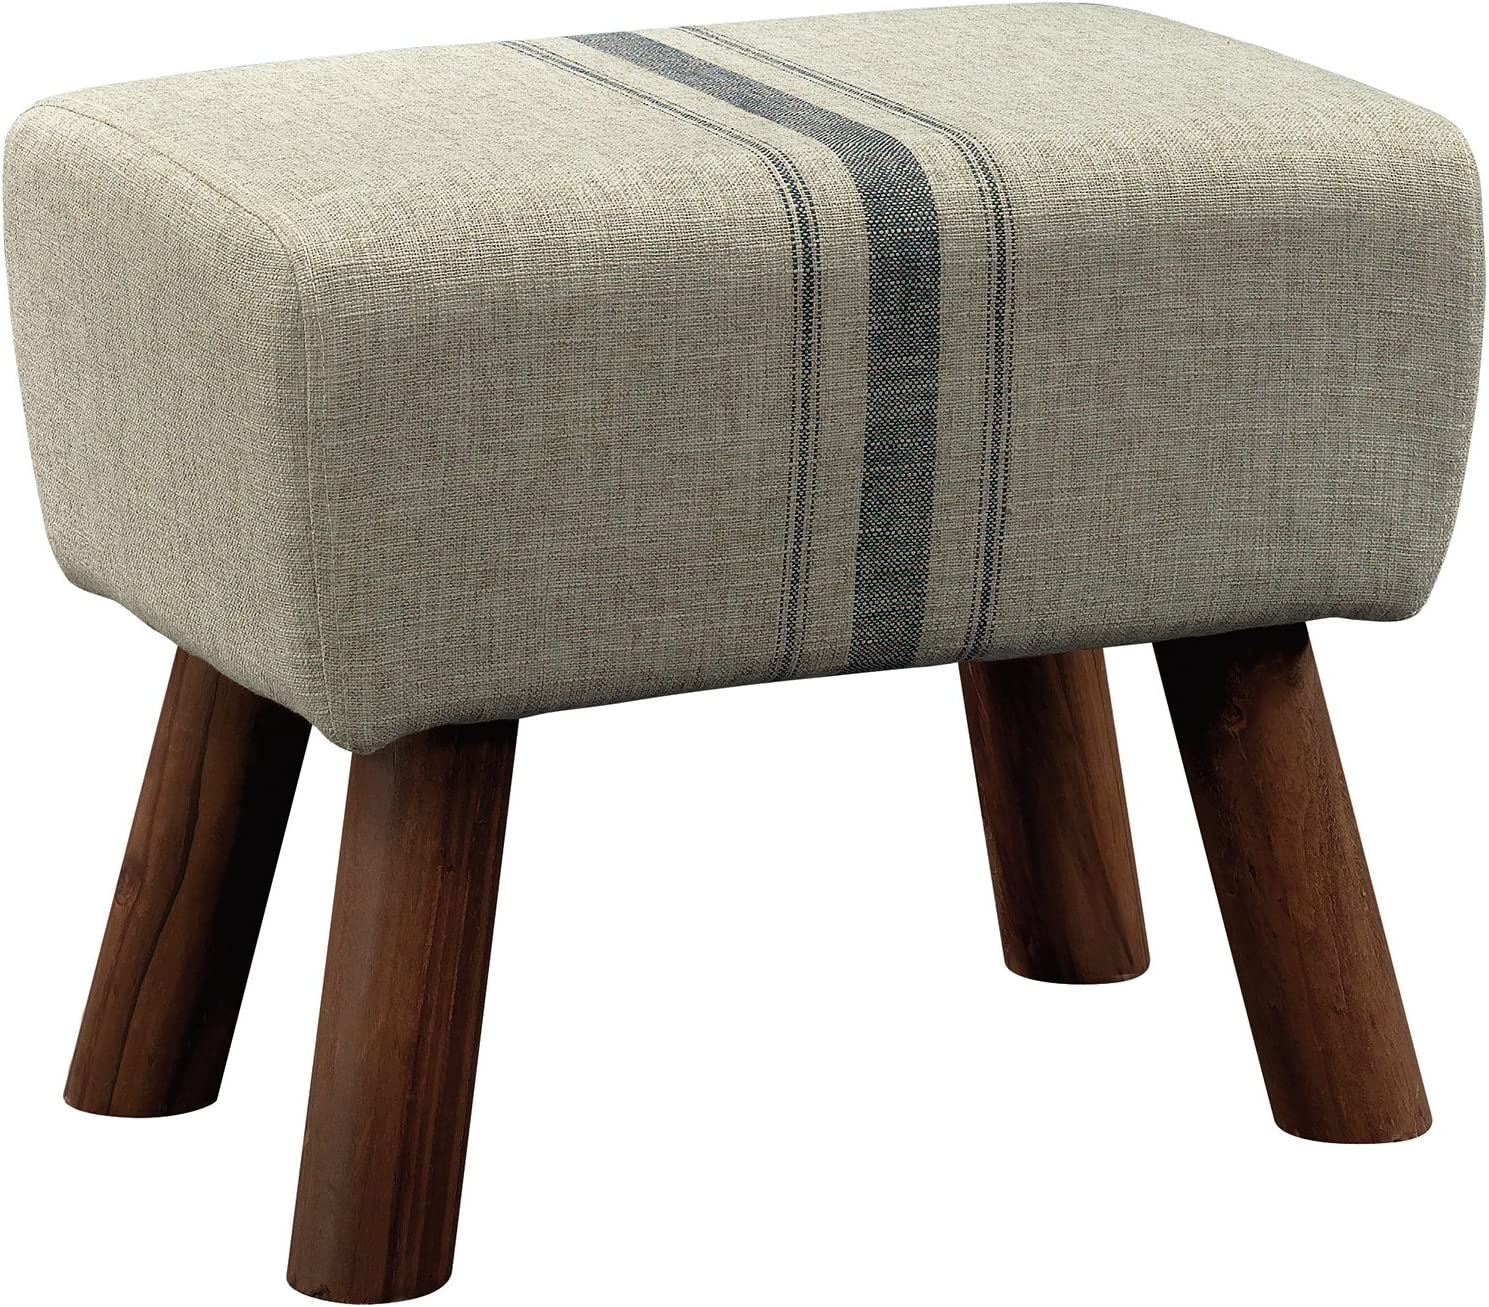 Sauder New Grange Accent Stool, Beige finish